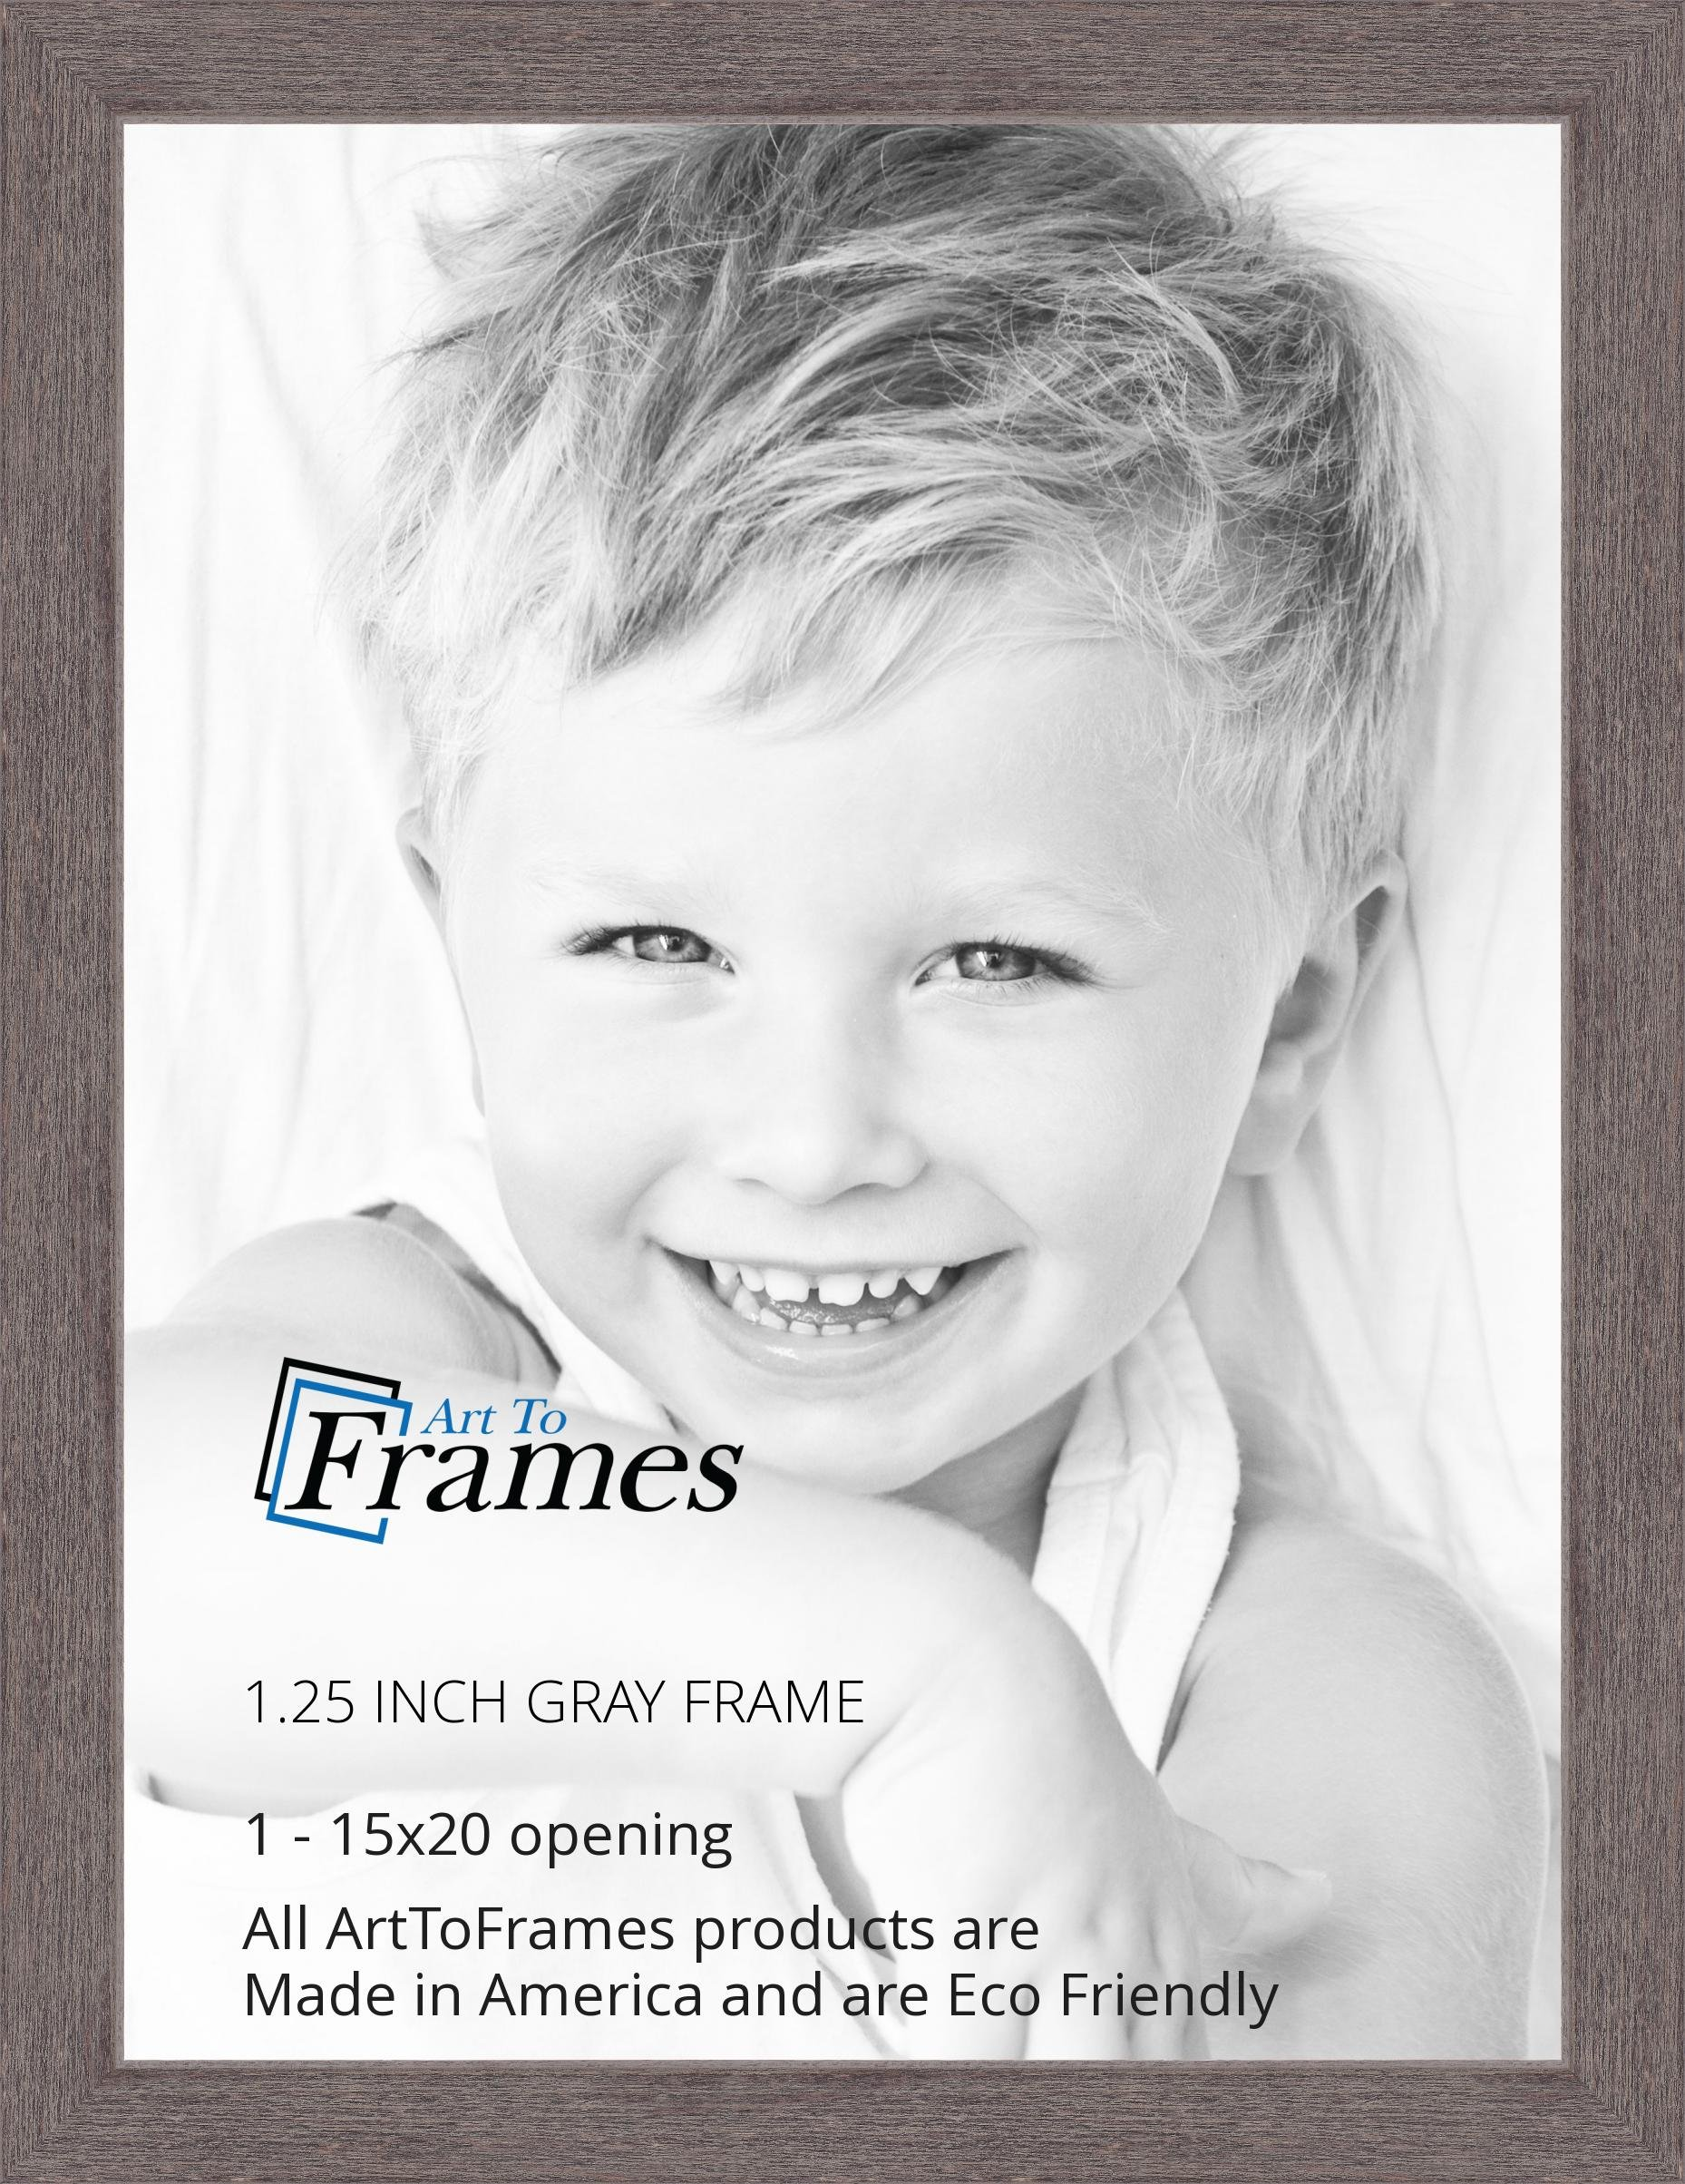 ArtToFrames 15x20 inch Gray Rustic Barnwood Wood Picture Frame, 2WOM0066-77900-YGRY-15x20 by ArtToFrames (Image #2)